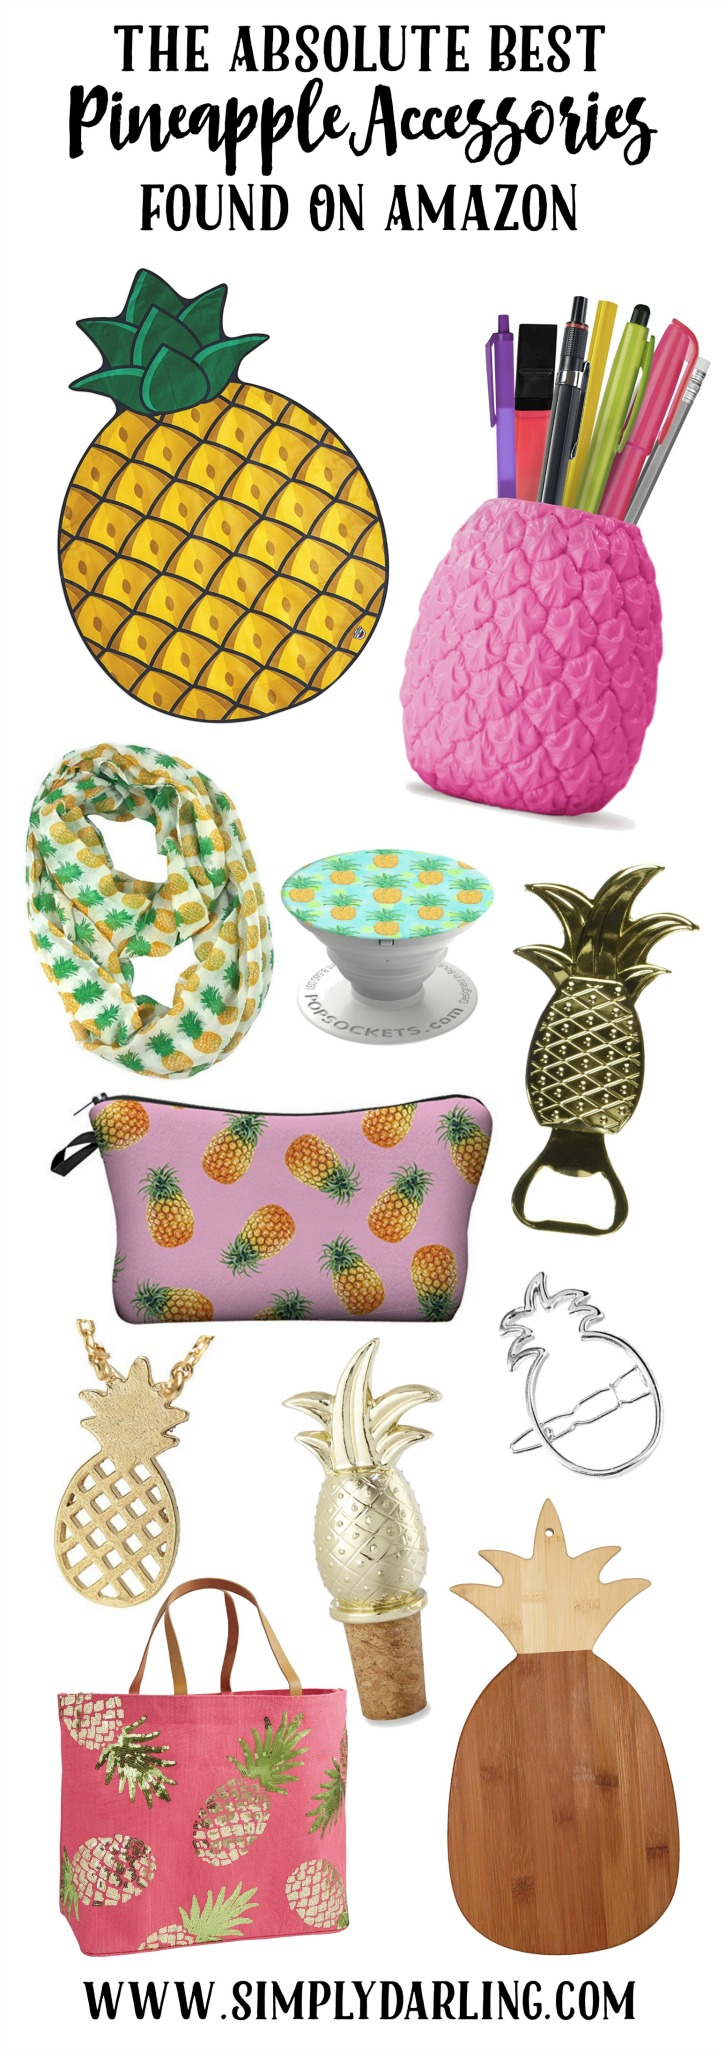 Pineapple Accessories the absolute best pineapple accessories found on amazon - simply